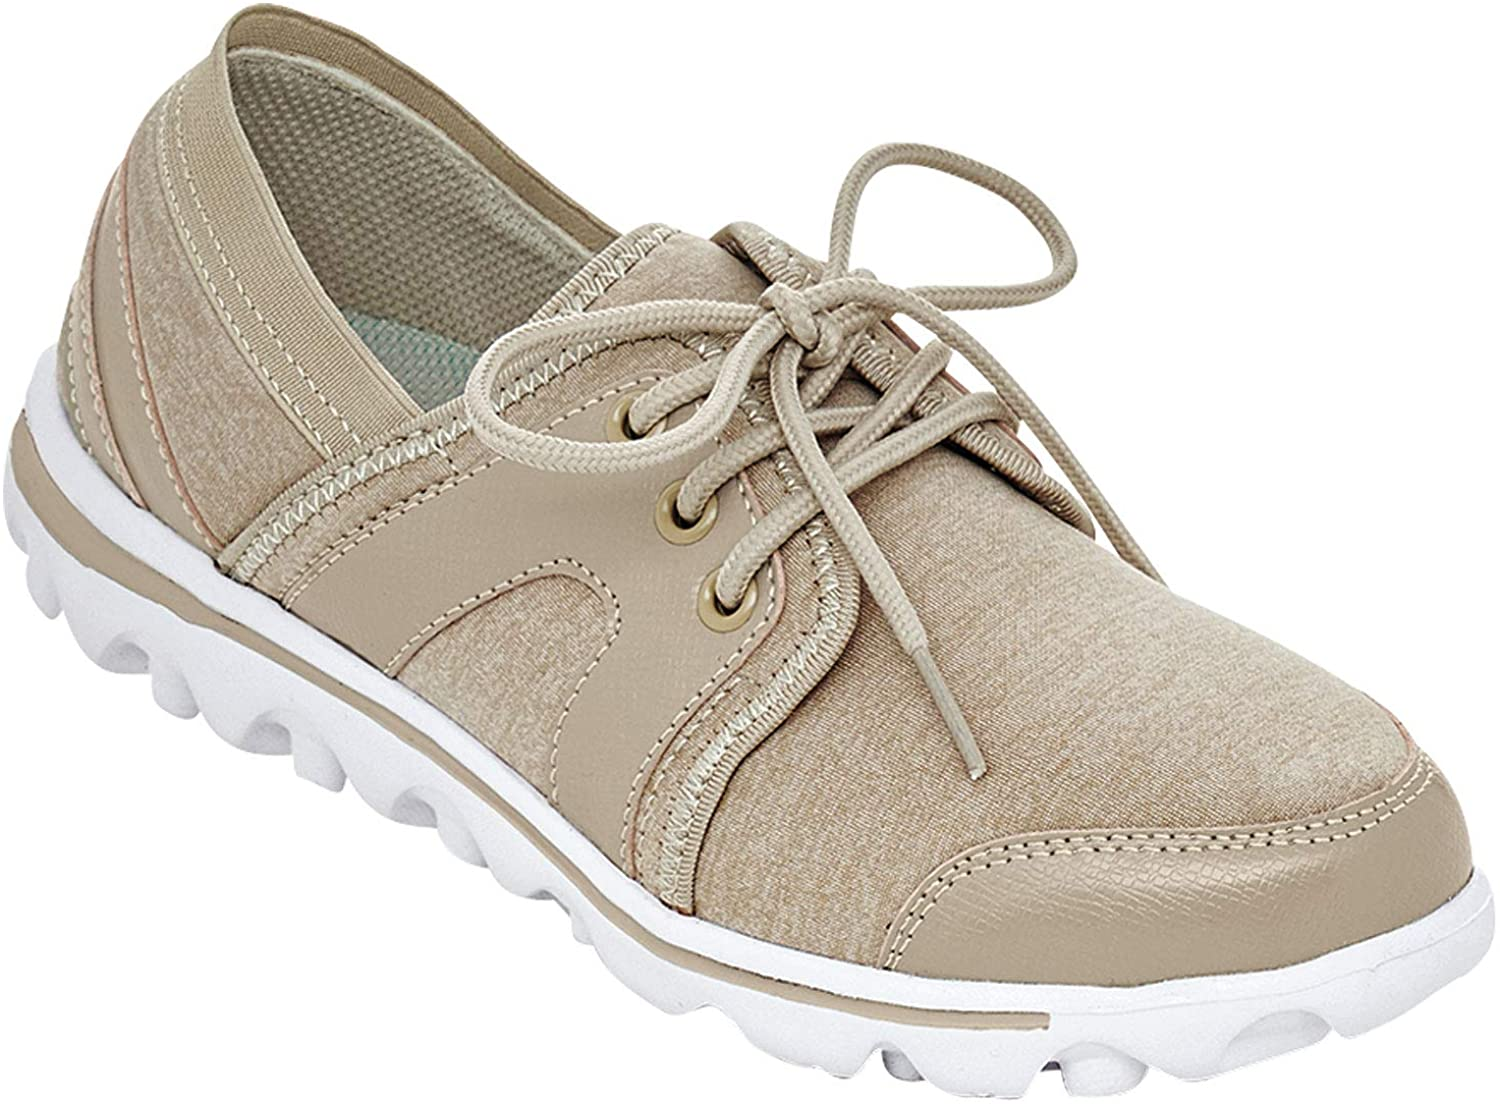 Propet Womens Olanna Lace Up Sneakers Casual Sneakers,